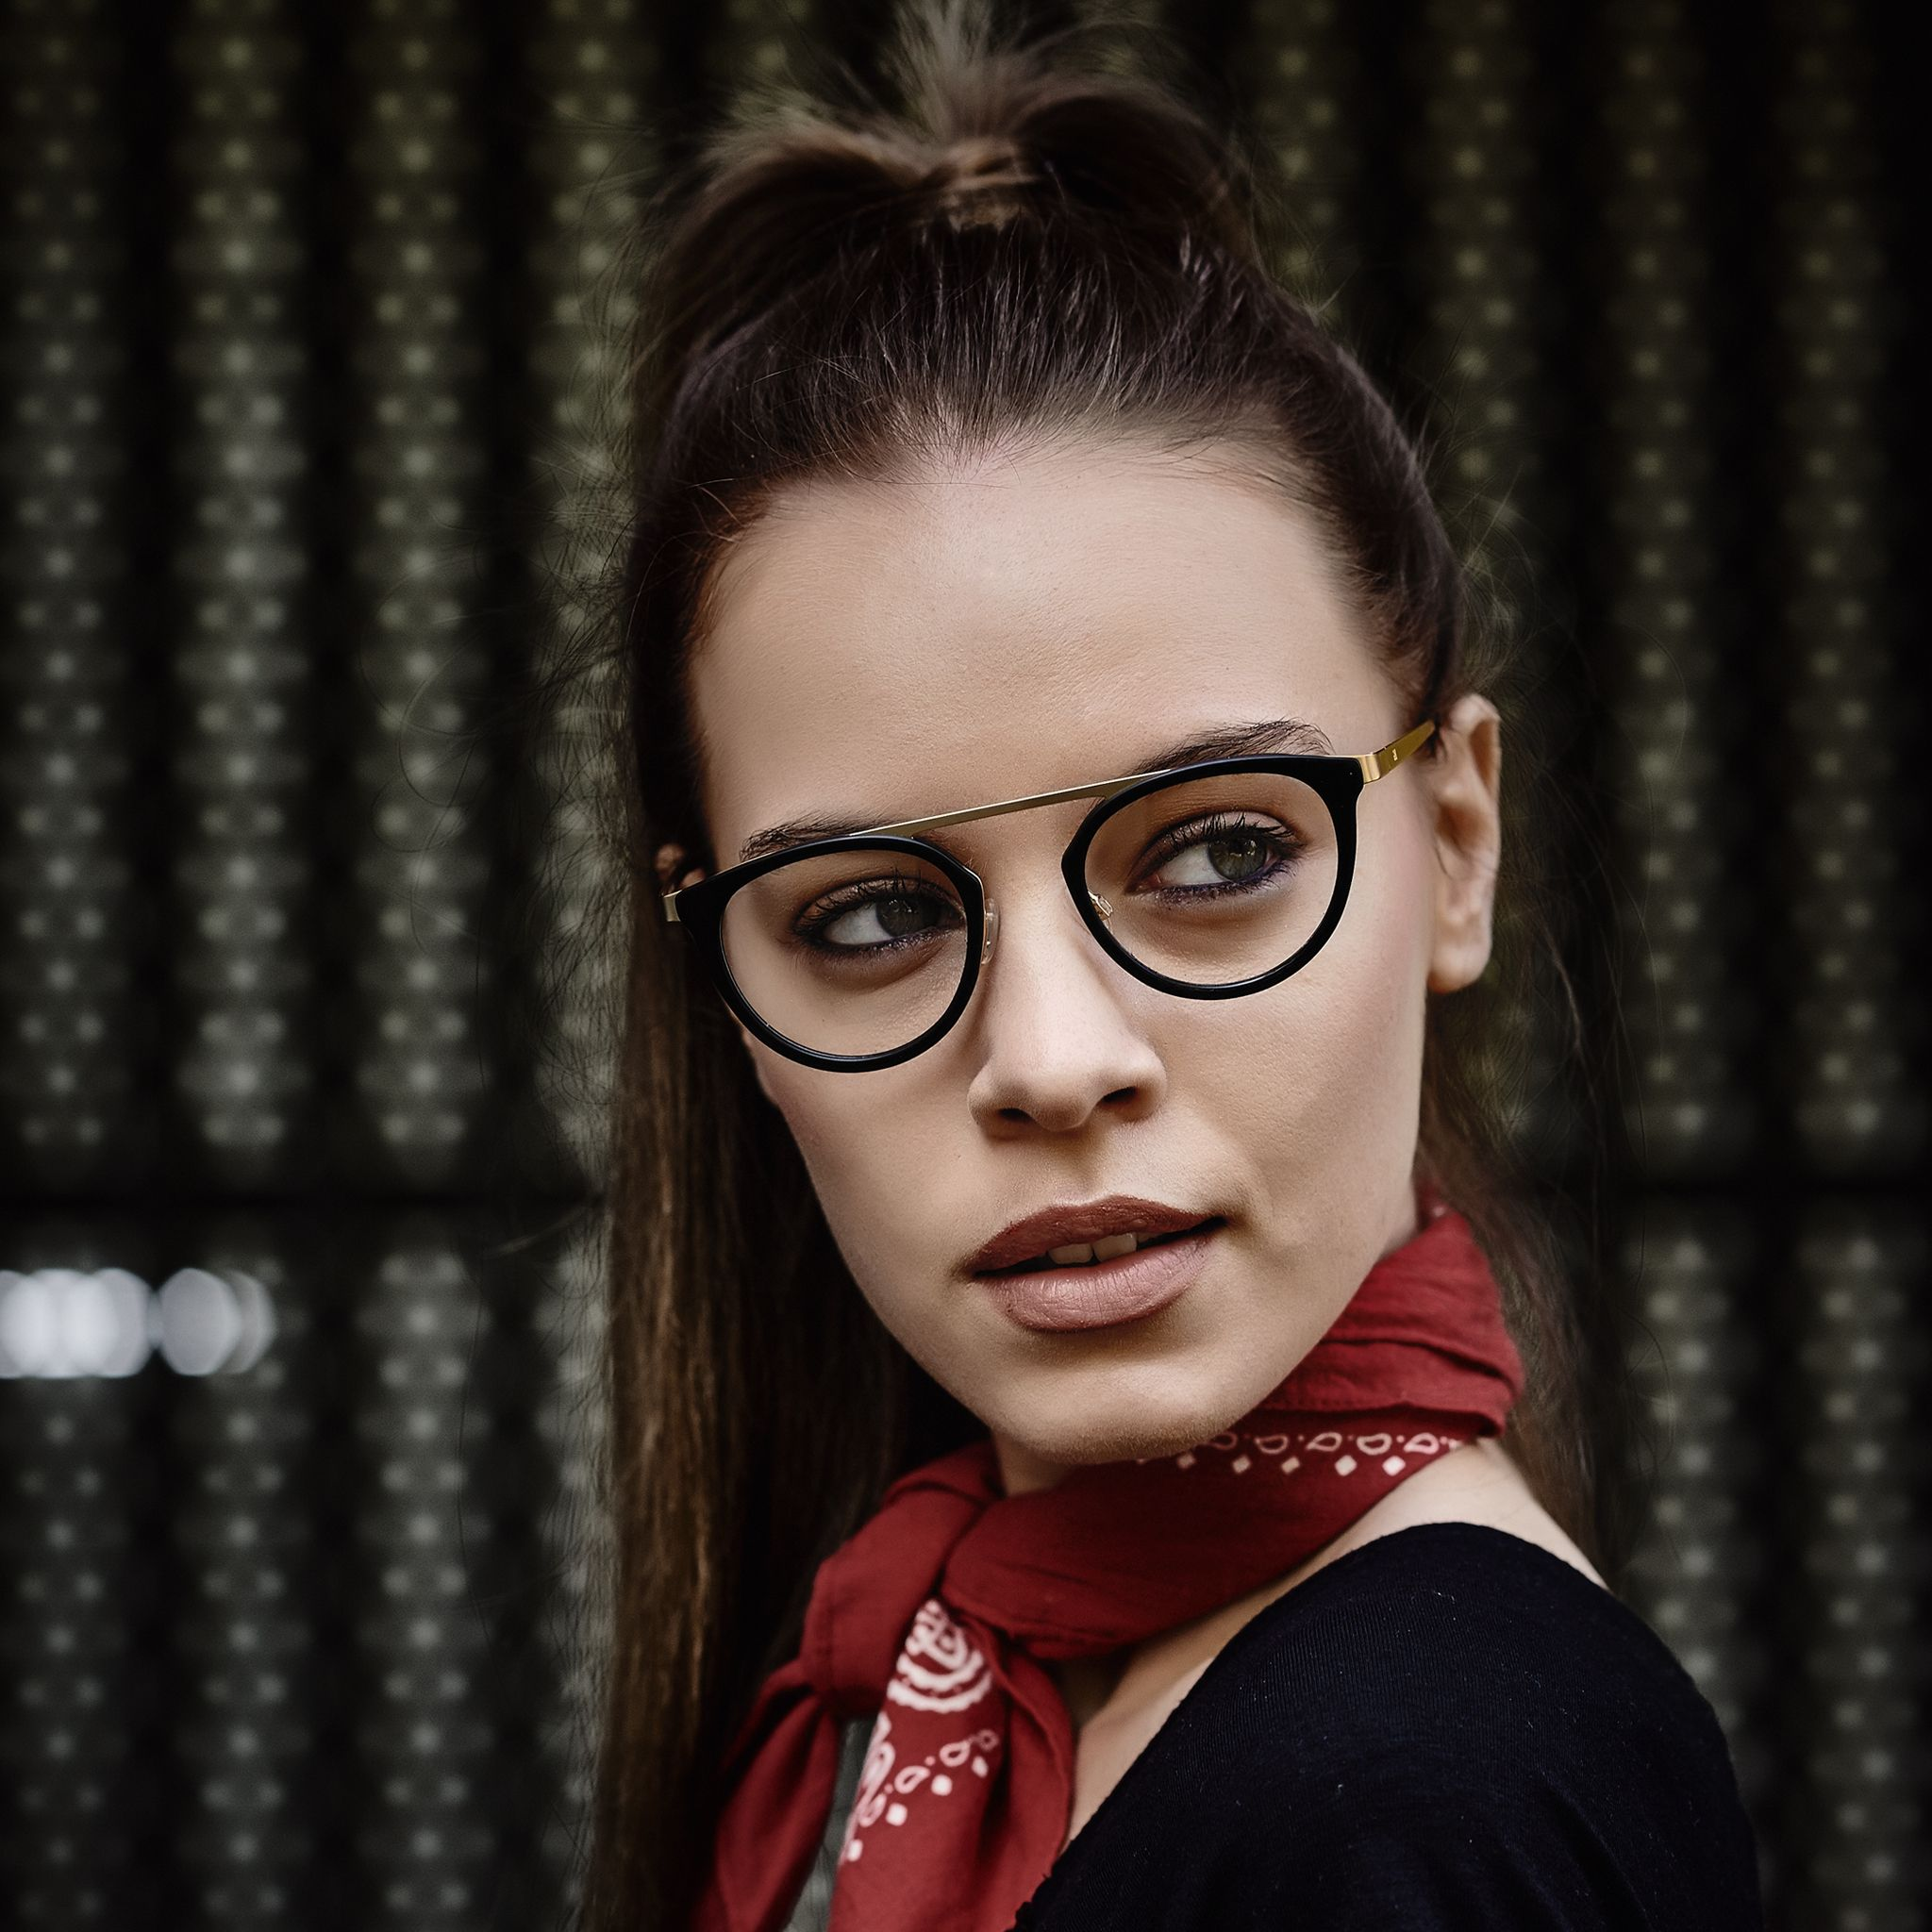 The international brand is exemplary of unconventional looks, inspired by urban street style. #humphreys #eyewear #optical #collection #spring #look #story #style #fashionaddict #streetstyle #inspiration #musthave #humphreyseyewear